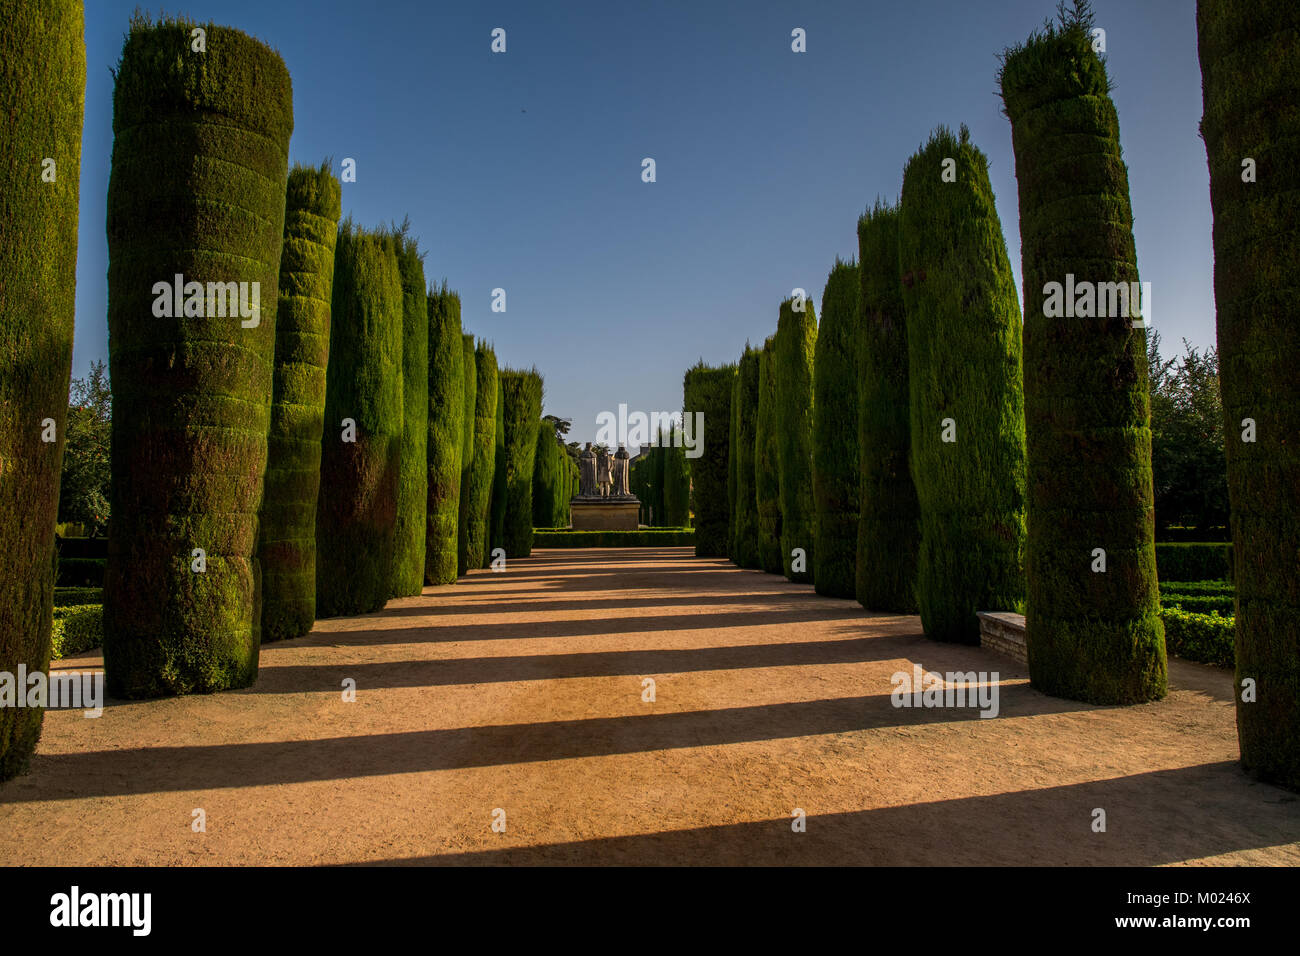 CORDOBA, ANDALUSIA / SPAIN - OCTOBER 14 2017:  GREEN TREES IN THE PARK - Stock Image